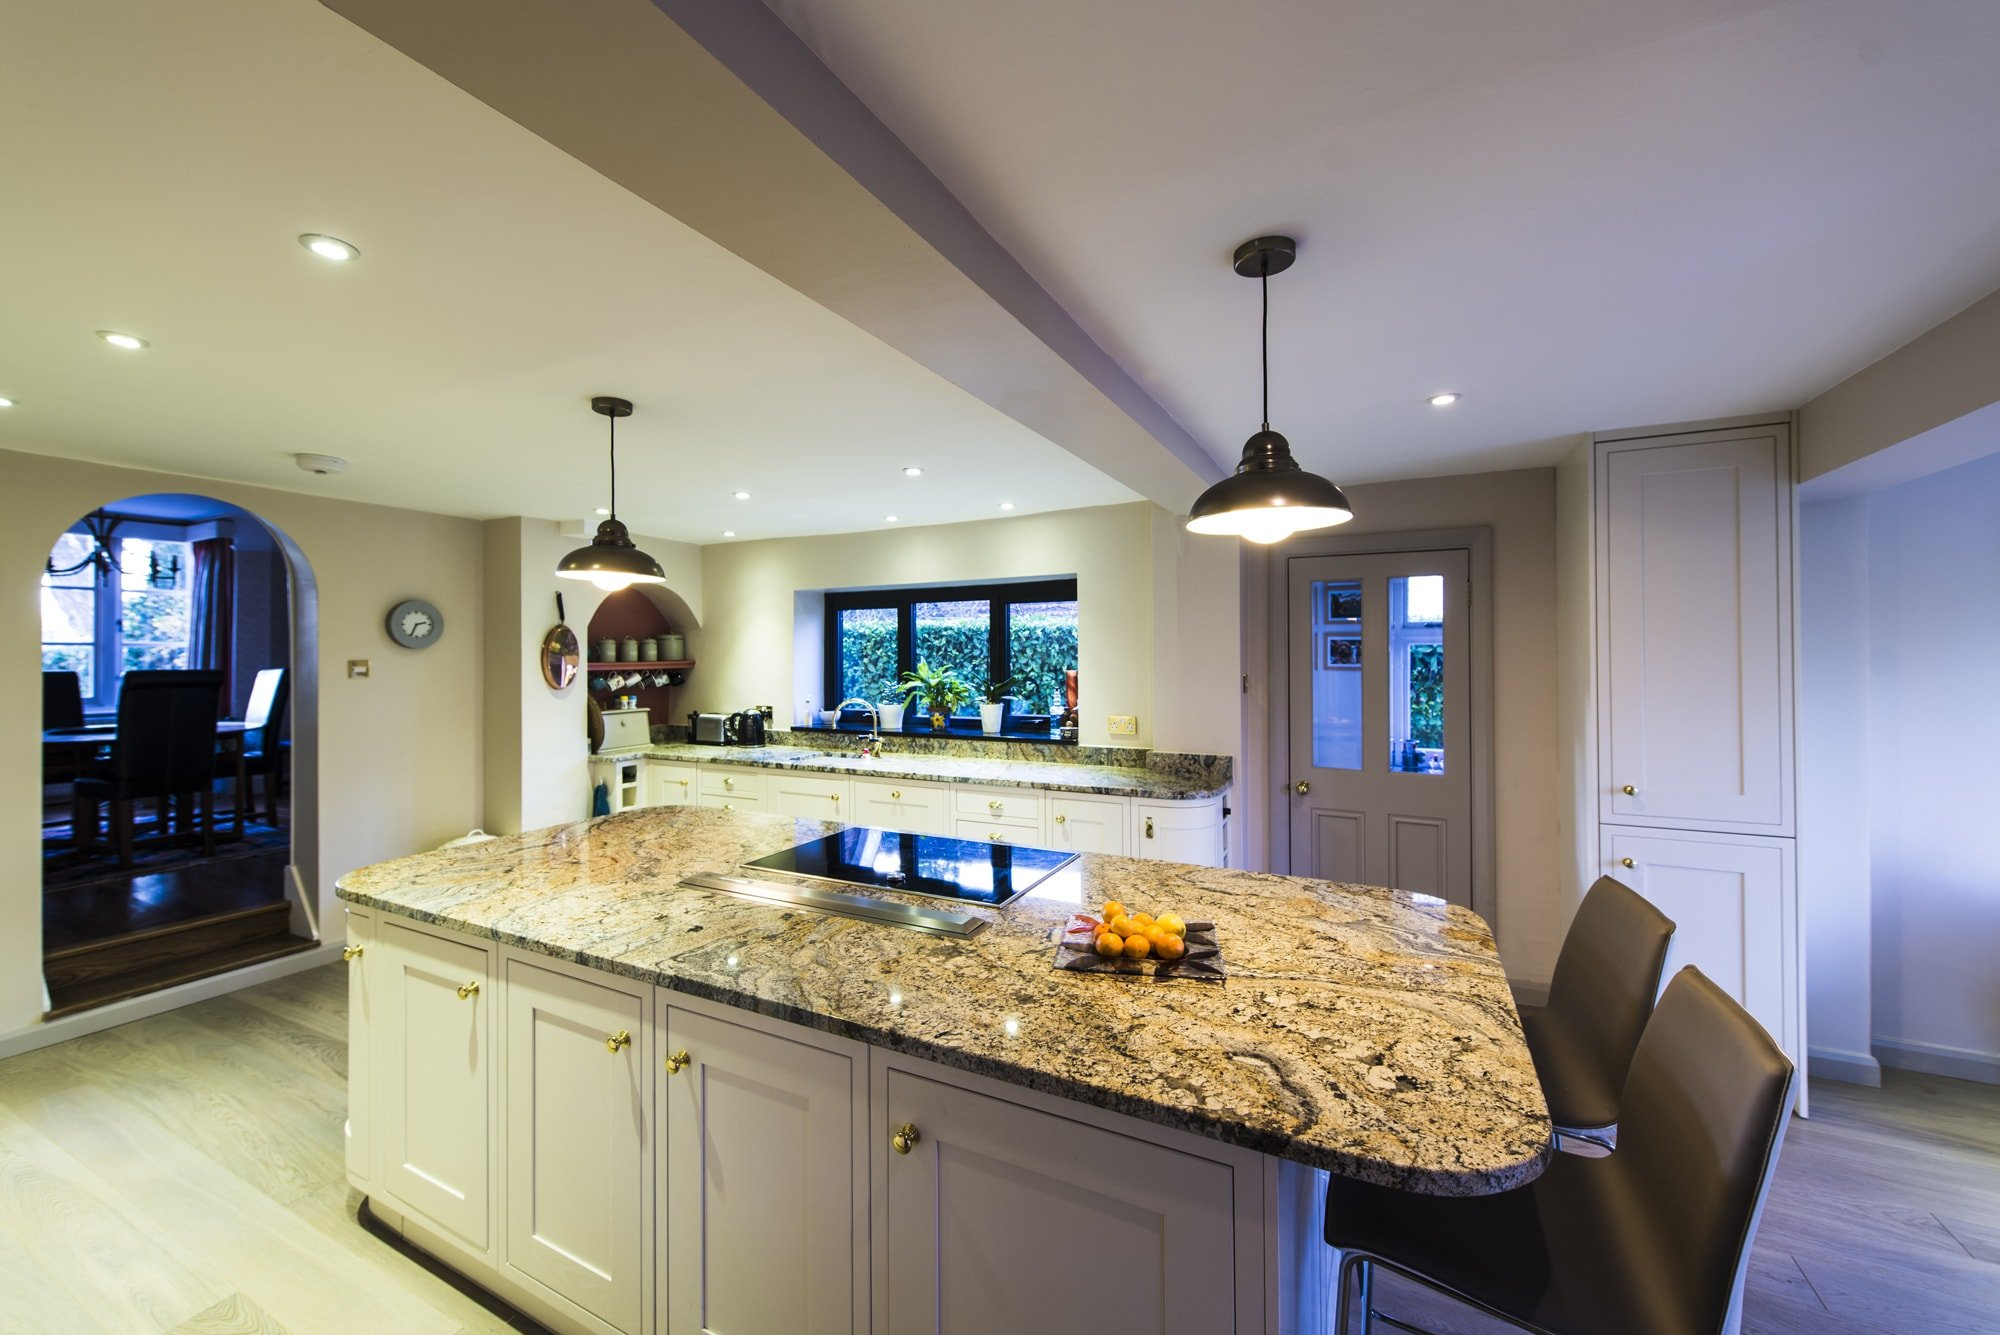 Kashmir Gold Granite Kitchen Betchworth Surrey Bespoke Paisley Gold Granite Kitchen Worktops